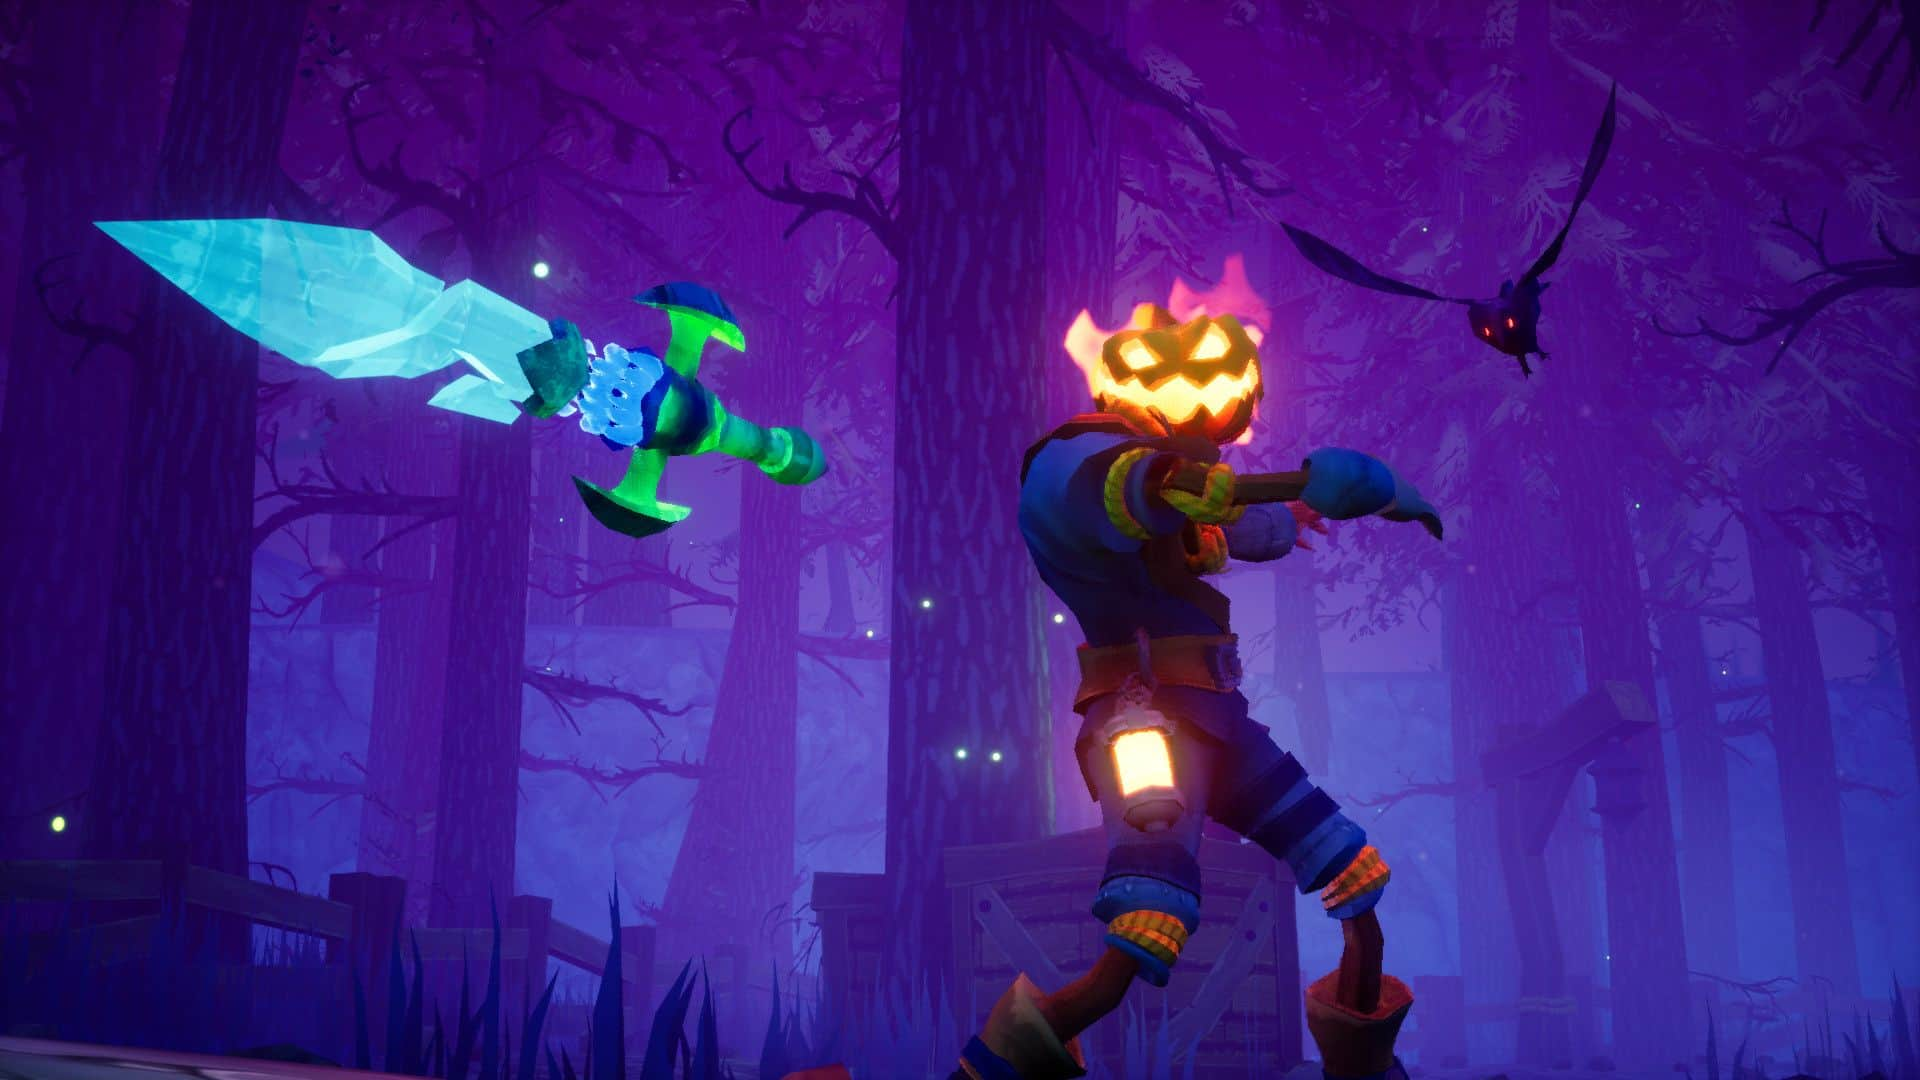 pumpkin jack - PUMPKIN JACK, THE TEXTORCIST, AND SLIME-SAN RELEASE FREE DEMOS ON STEAM